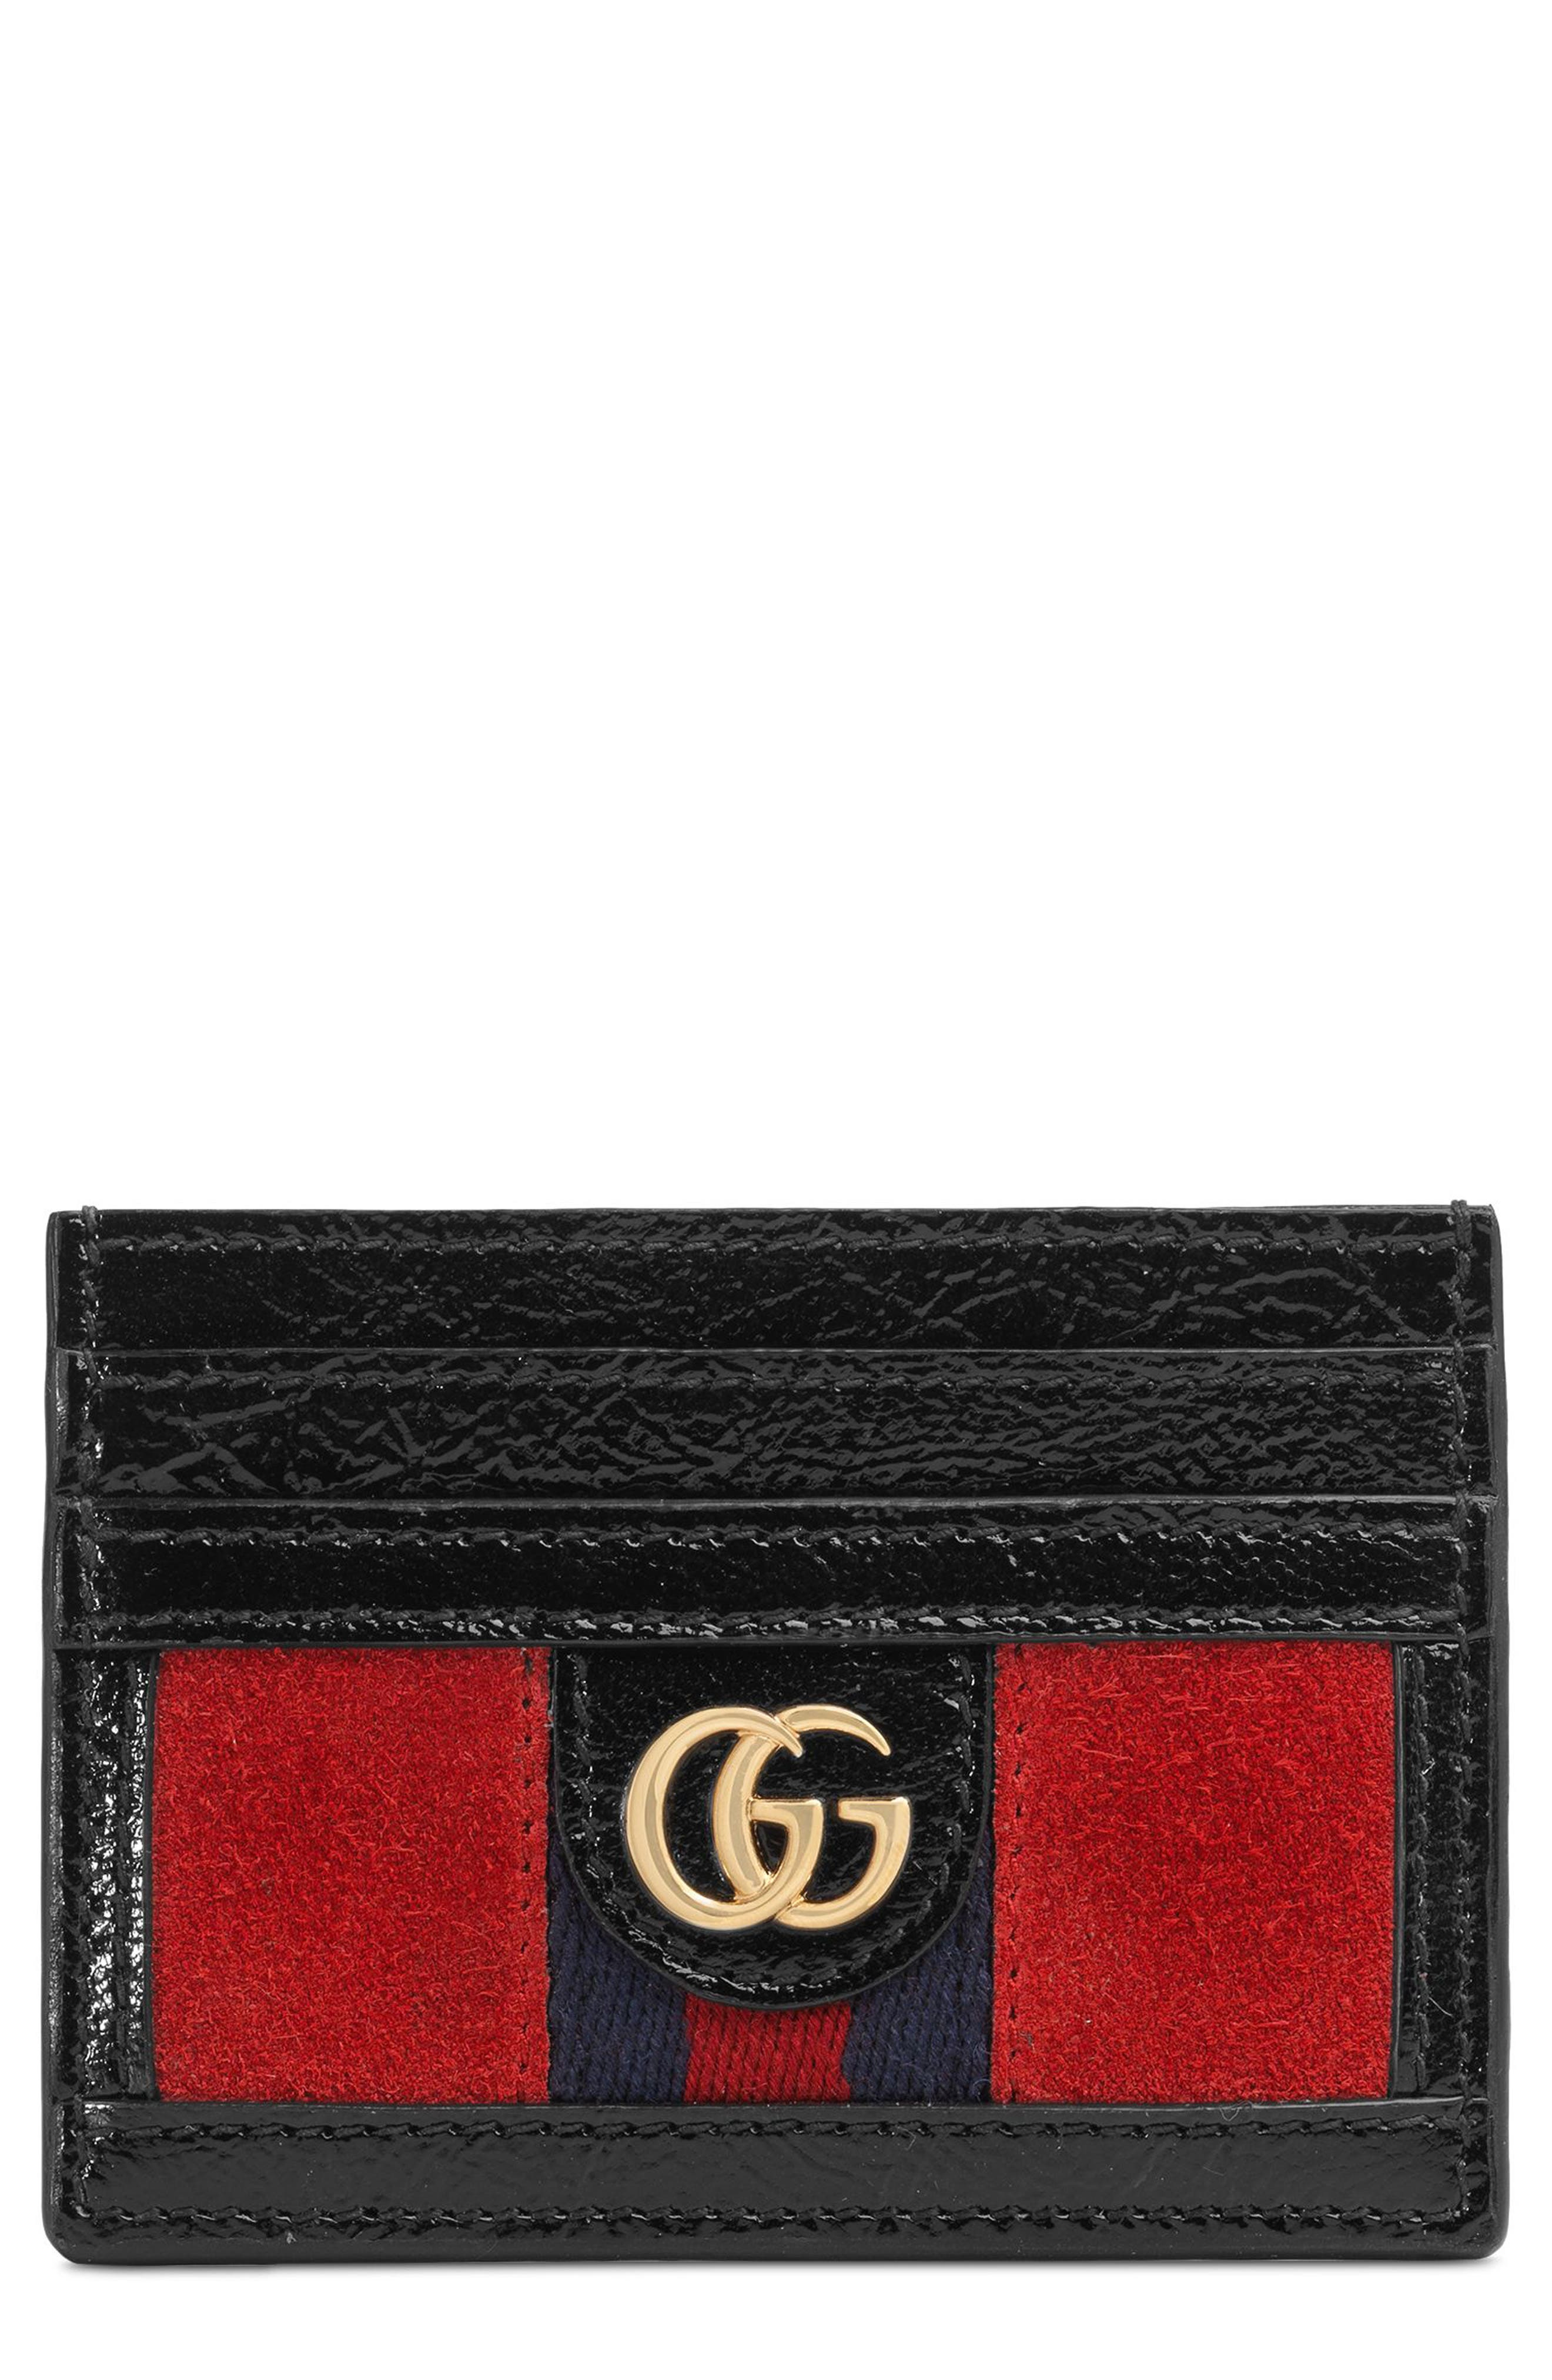 Main Image - Gucci Ophidia Suede Card Case